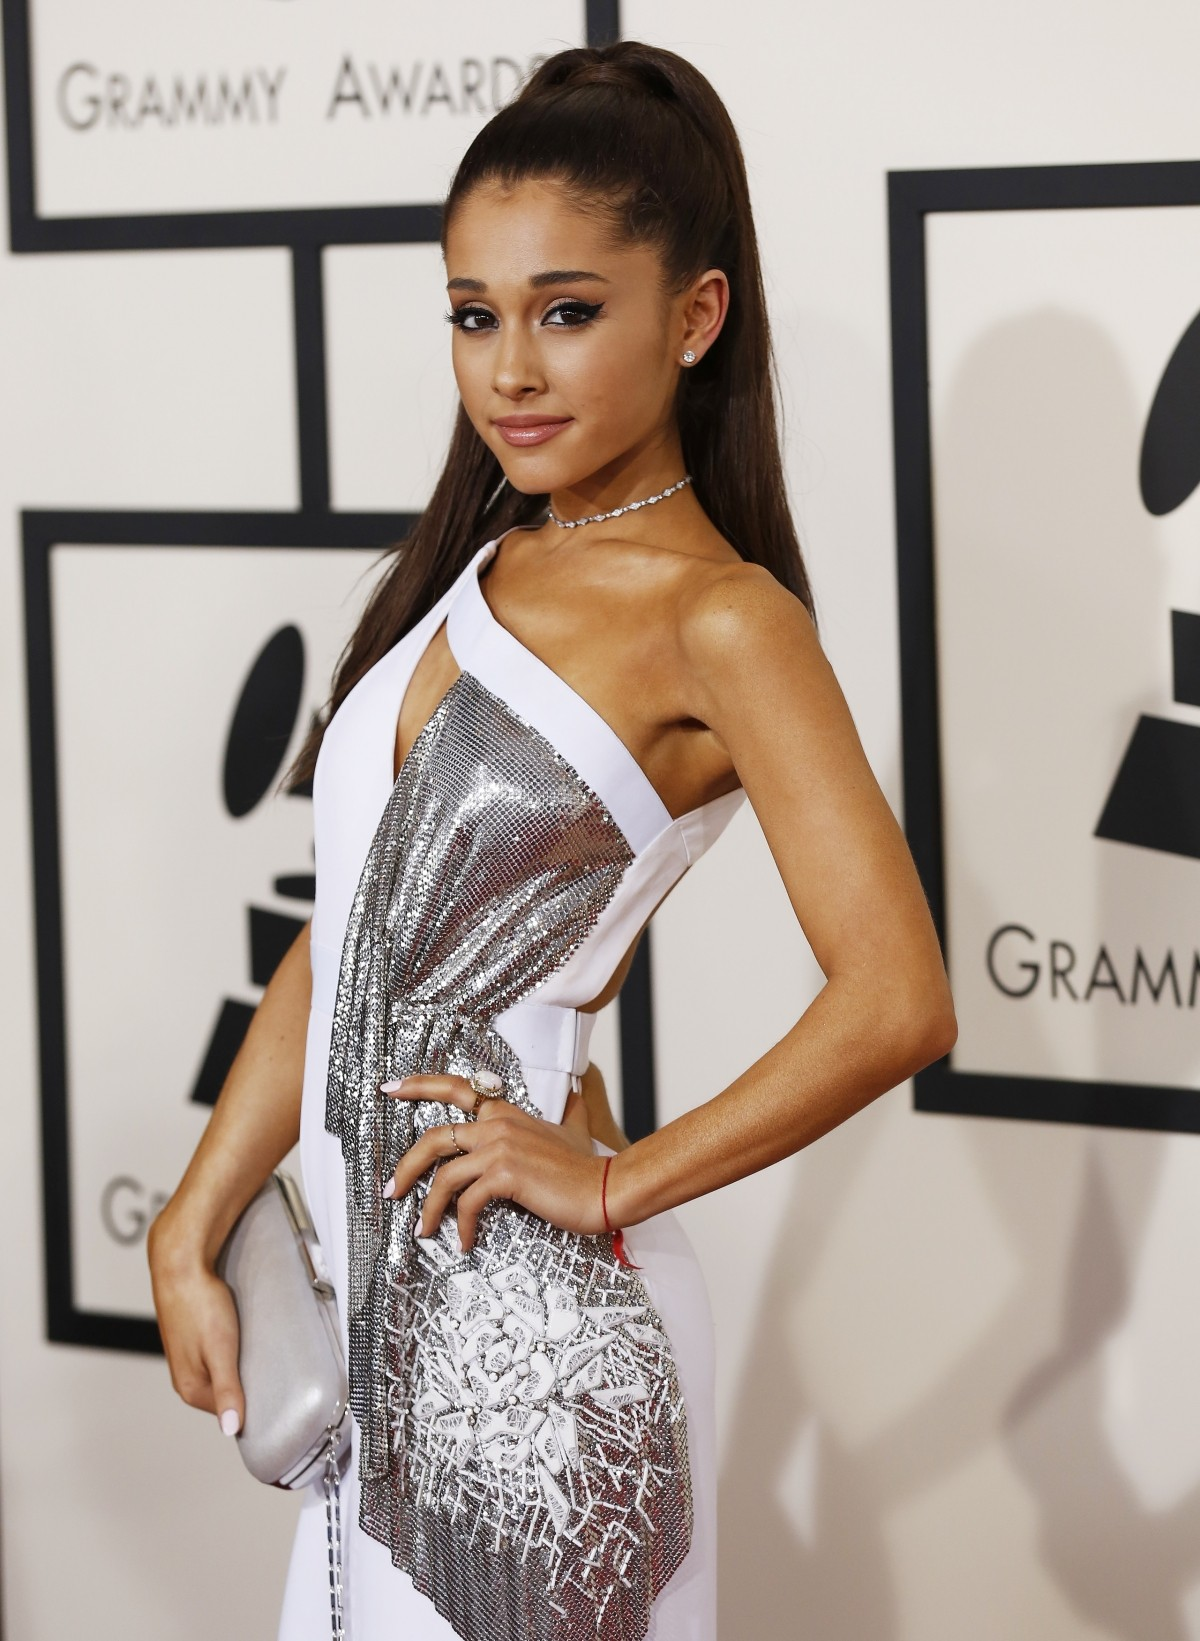 Arianda Grande at Grammy Awards 2015.